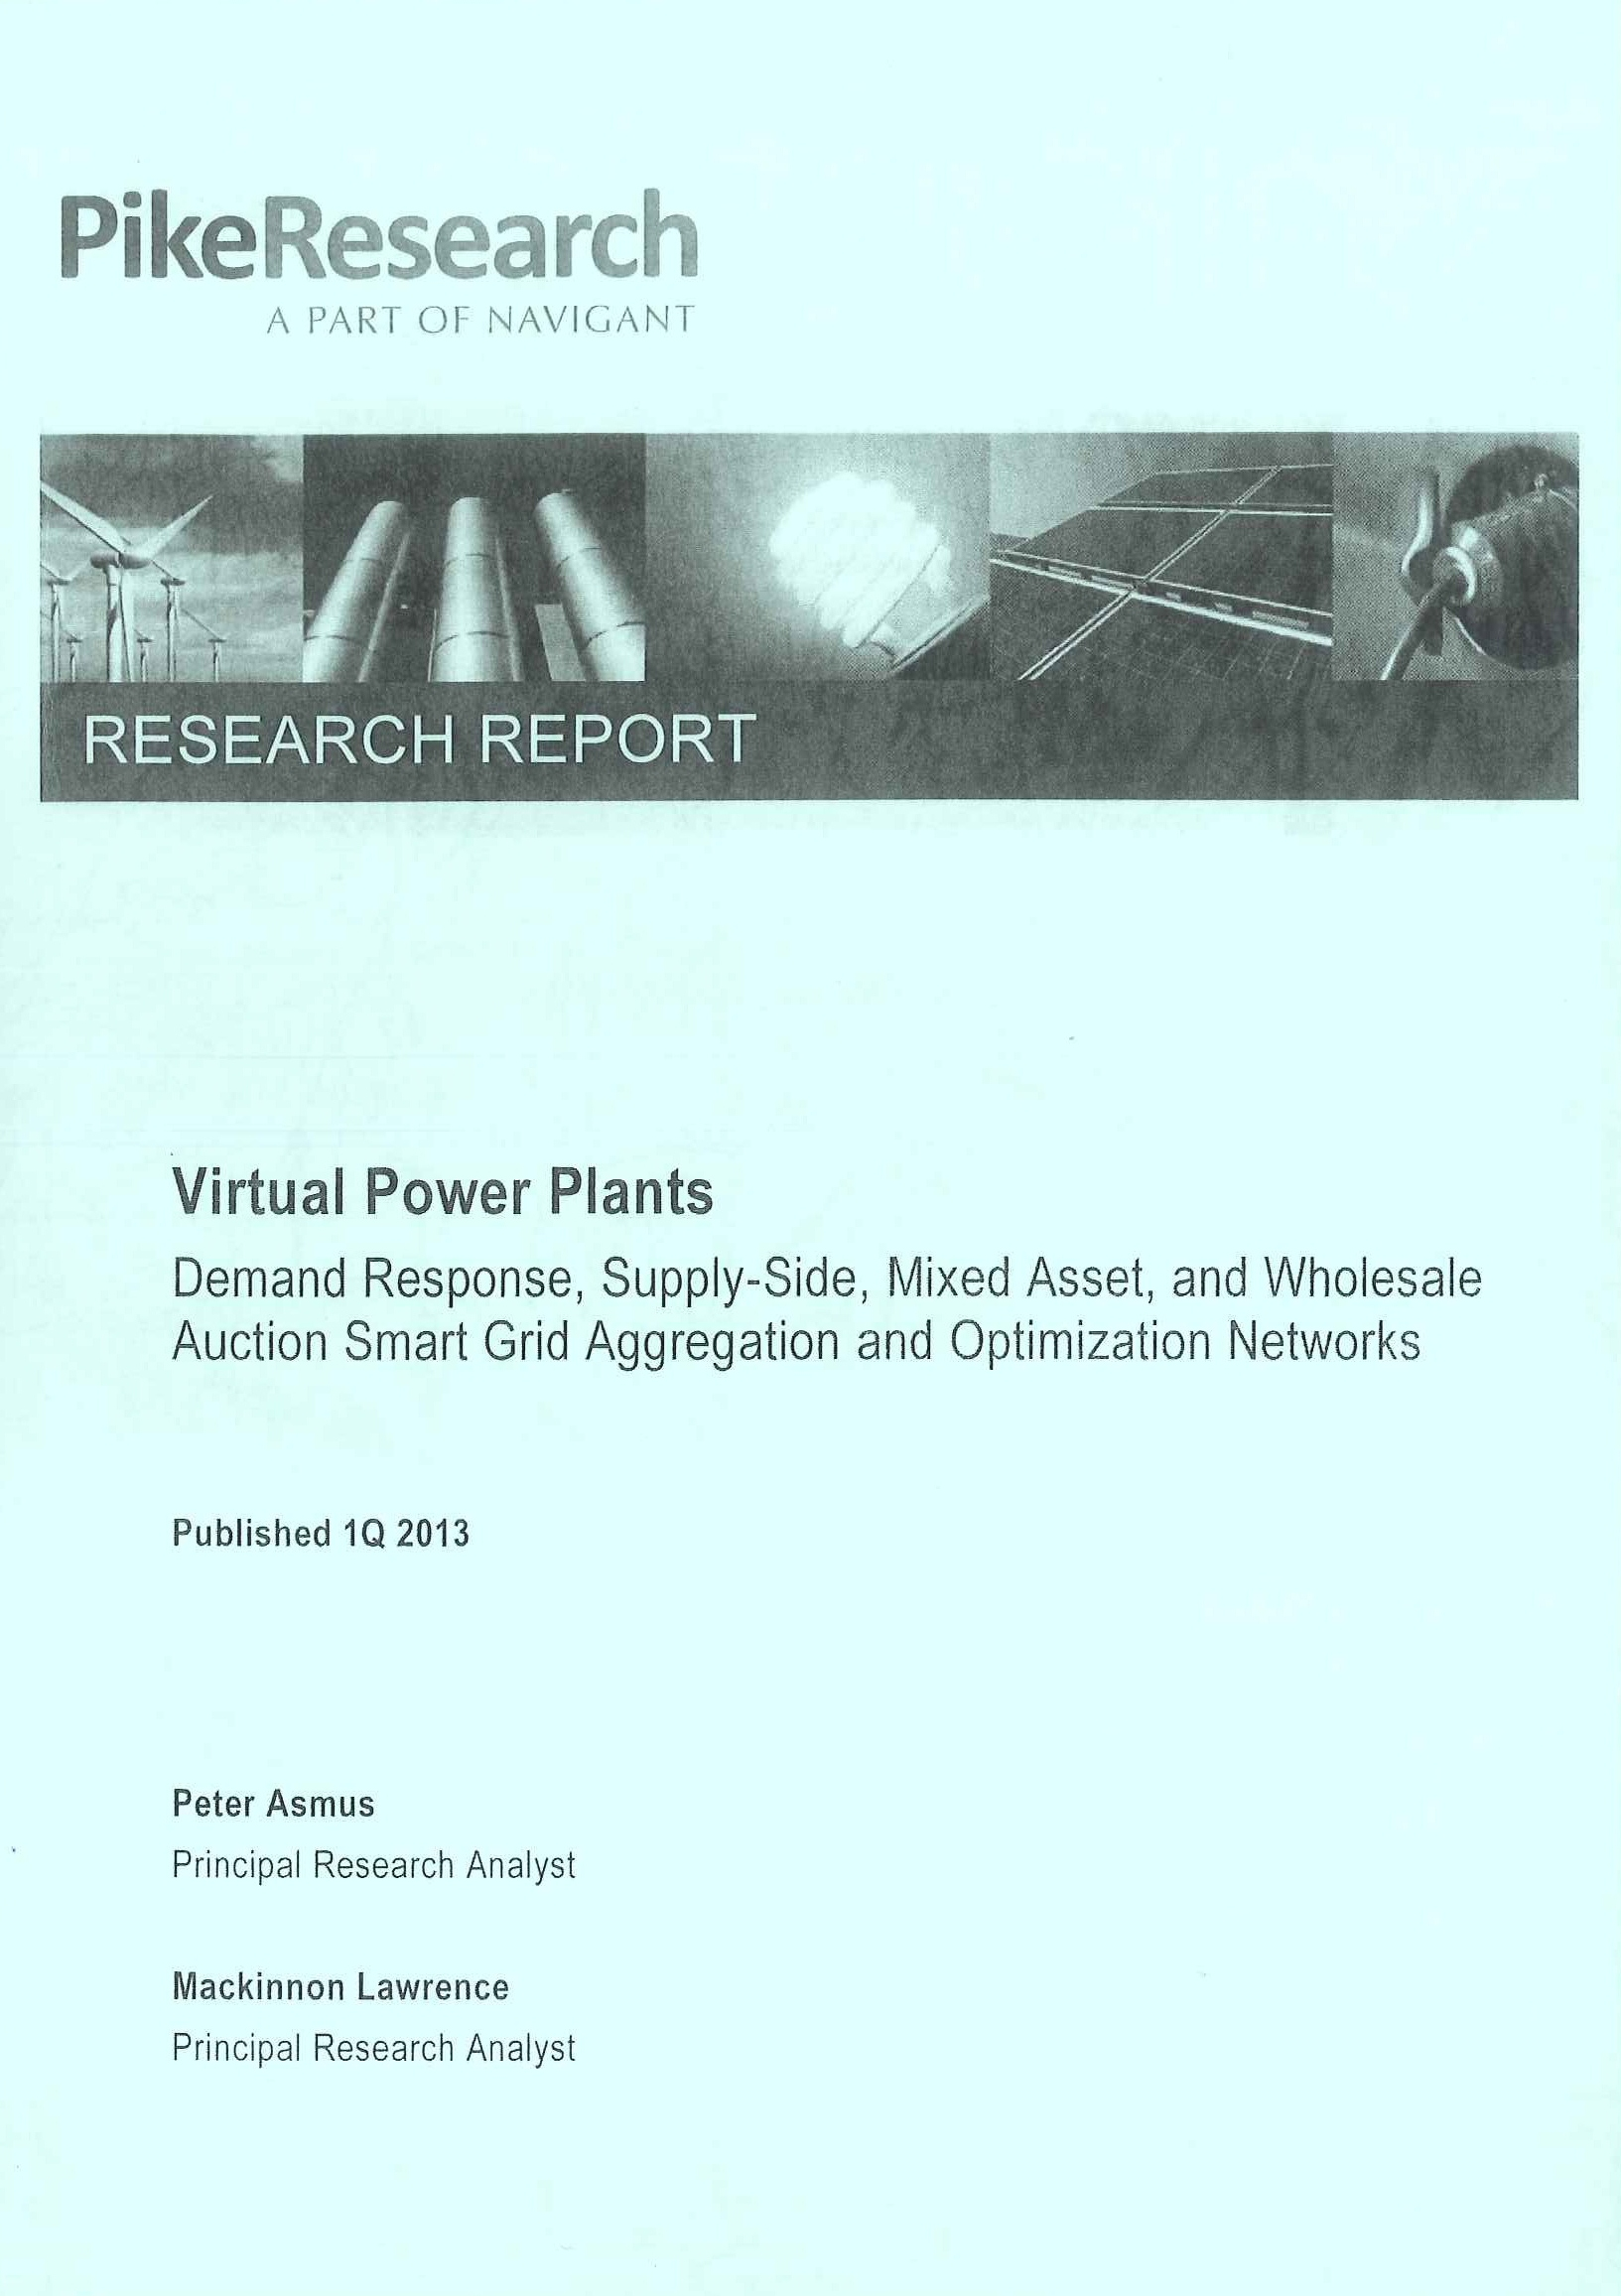 Virtual power plants [e-book]:demand response, supply-side, mixed asset, and wholesale auction smart grid aggregation and optimization networks